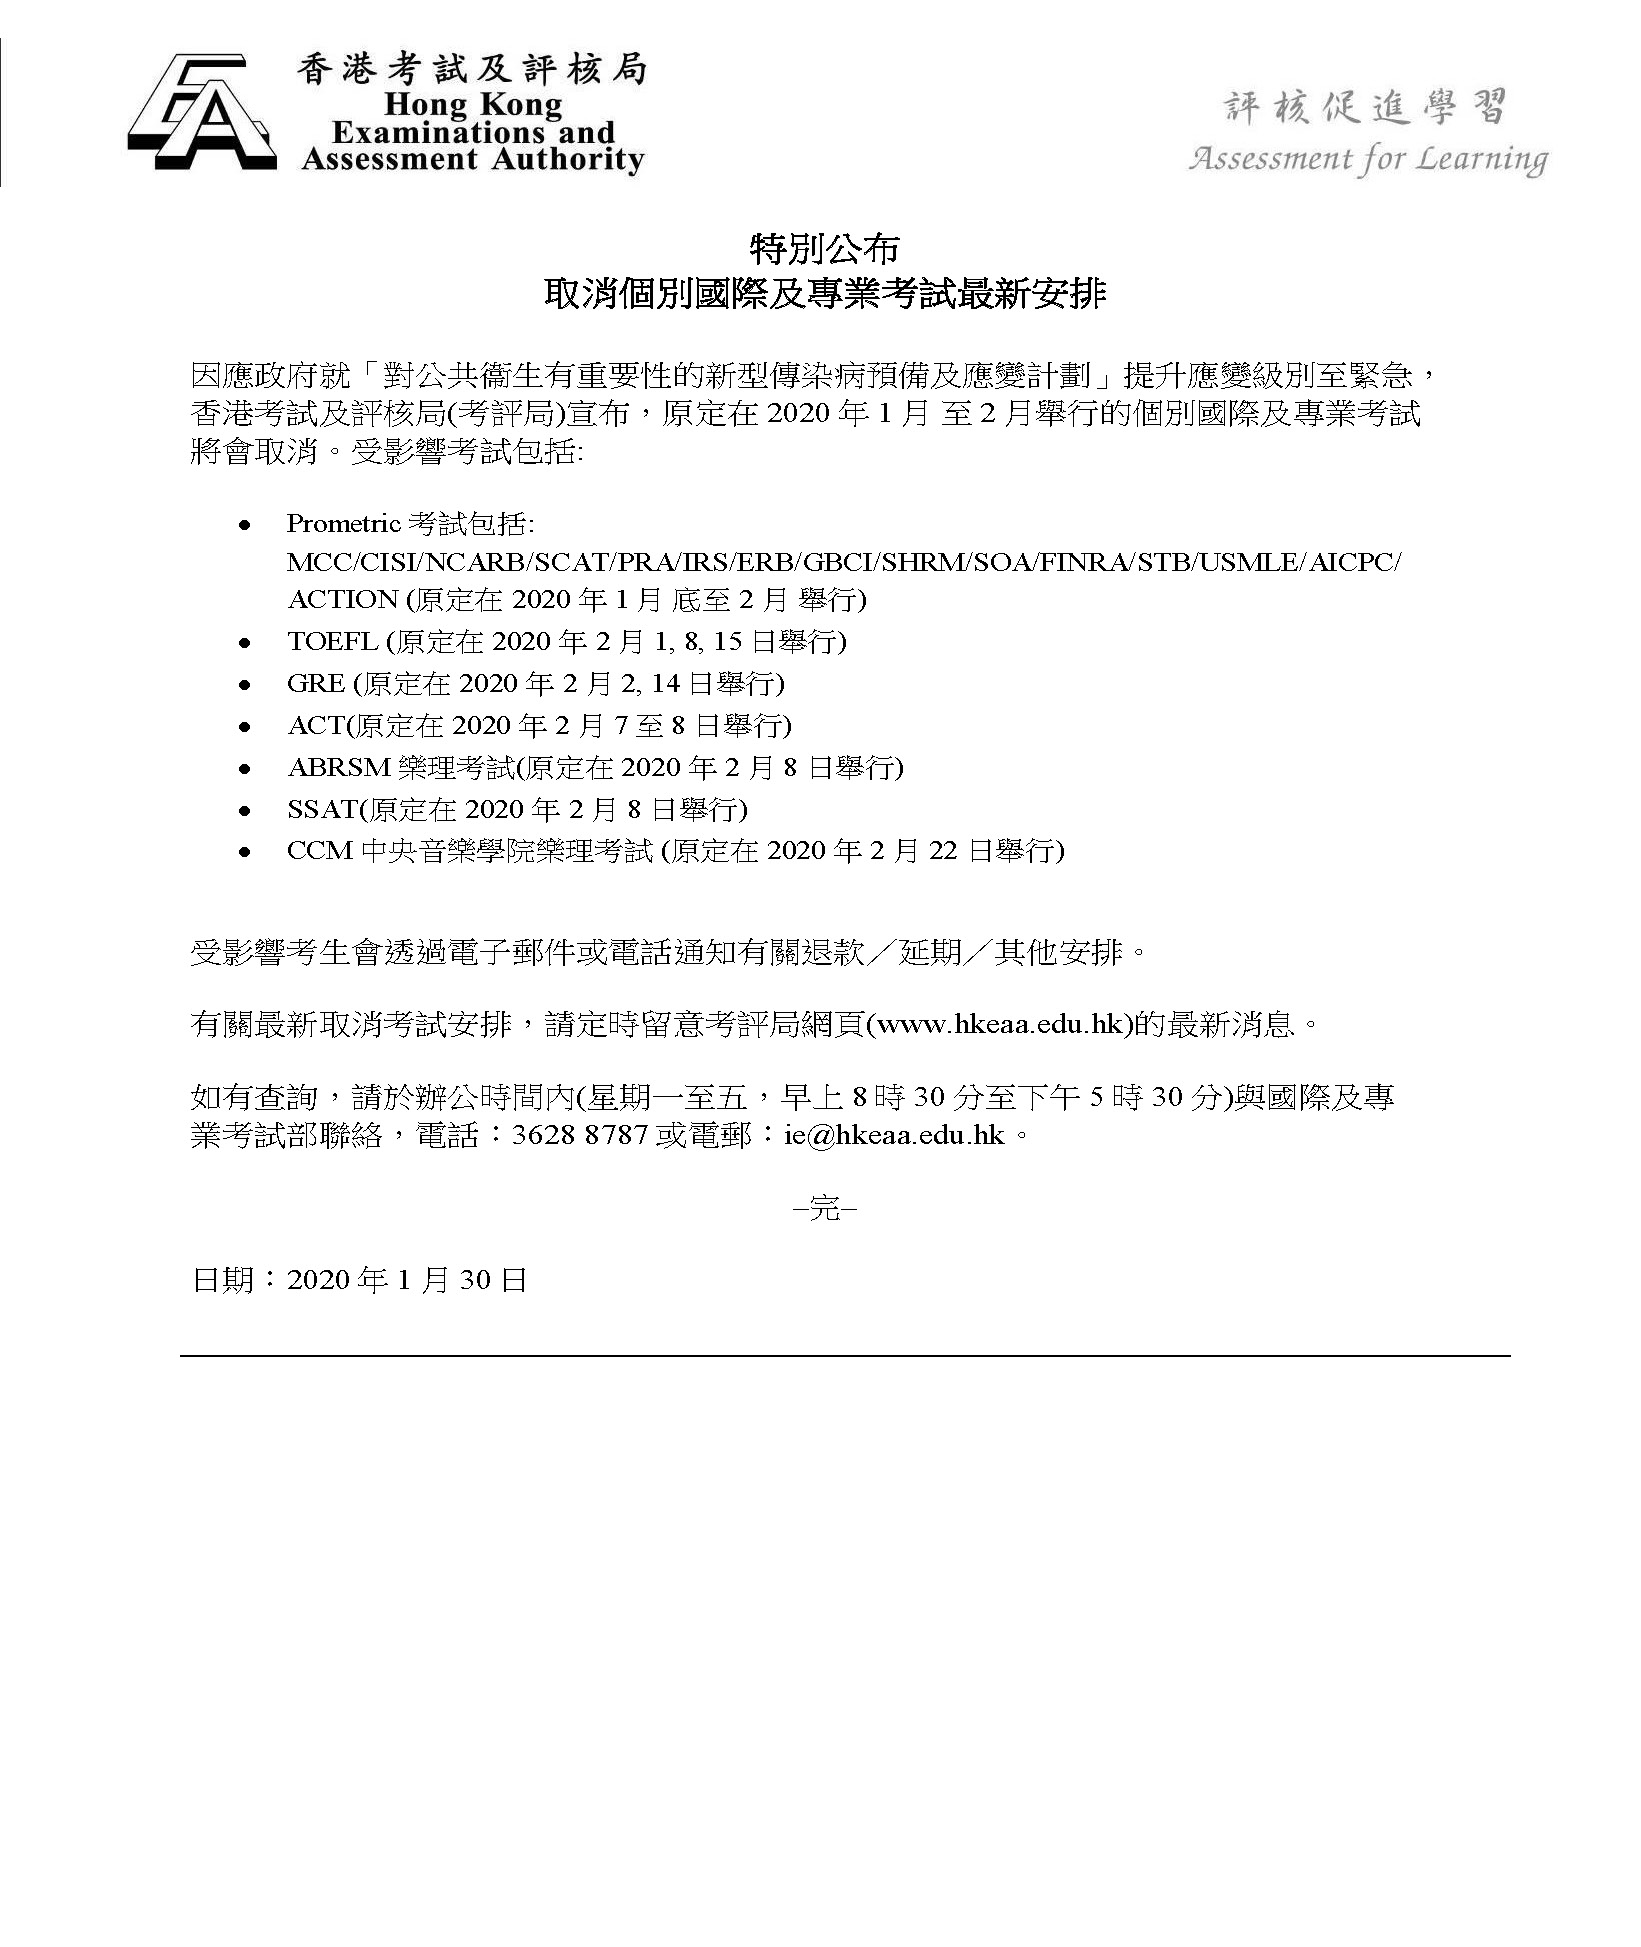 Announcement on special arrangement on cancellation of selected IPED exams 30012020 頁面 1